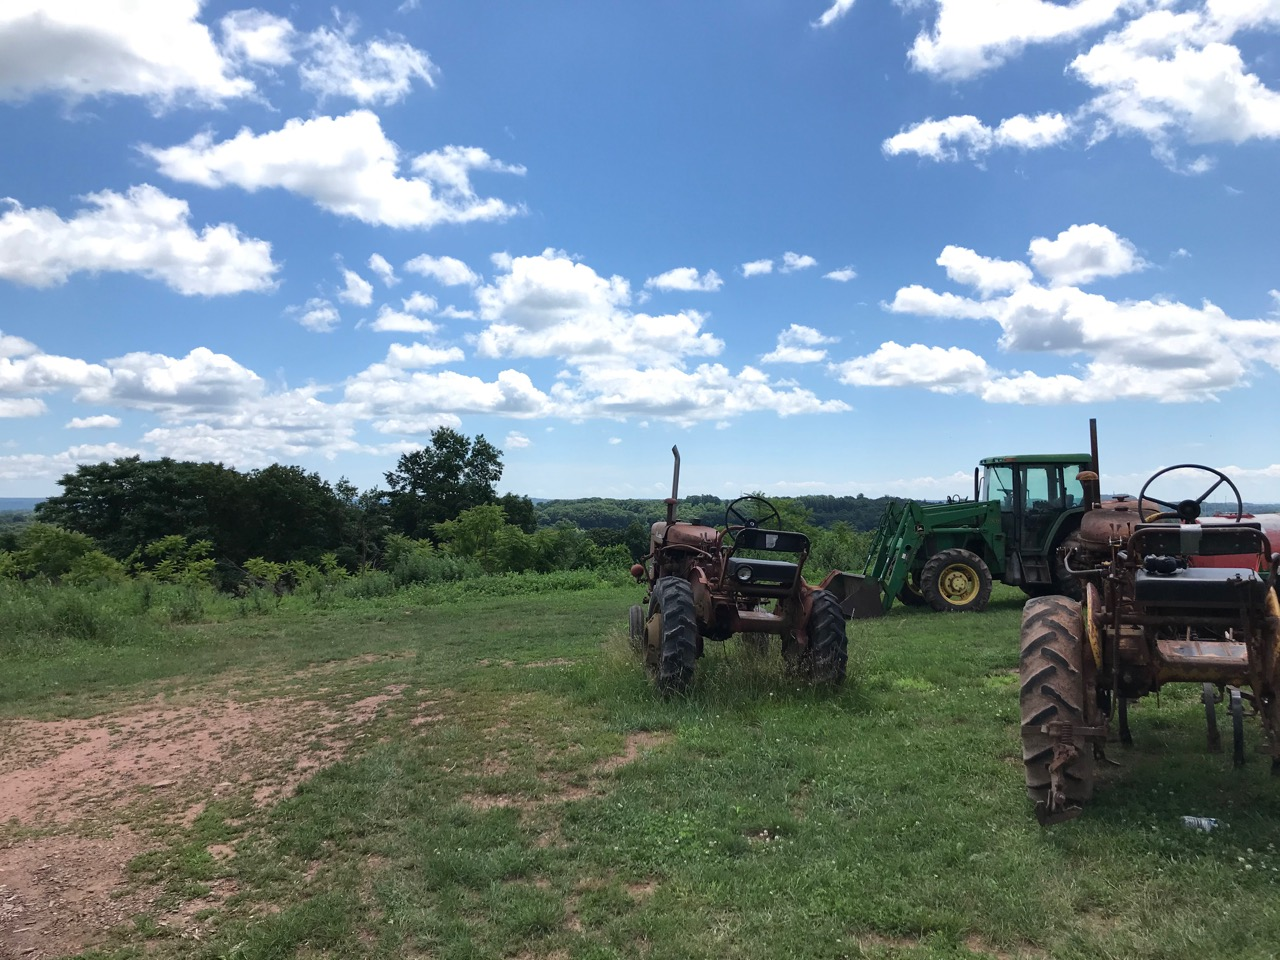 farm vehicles with blue sky and clouds in background